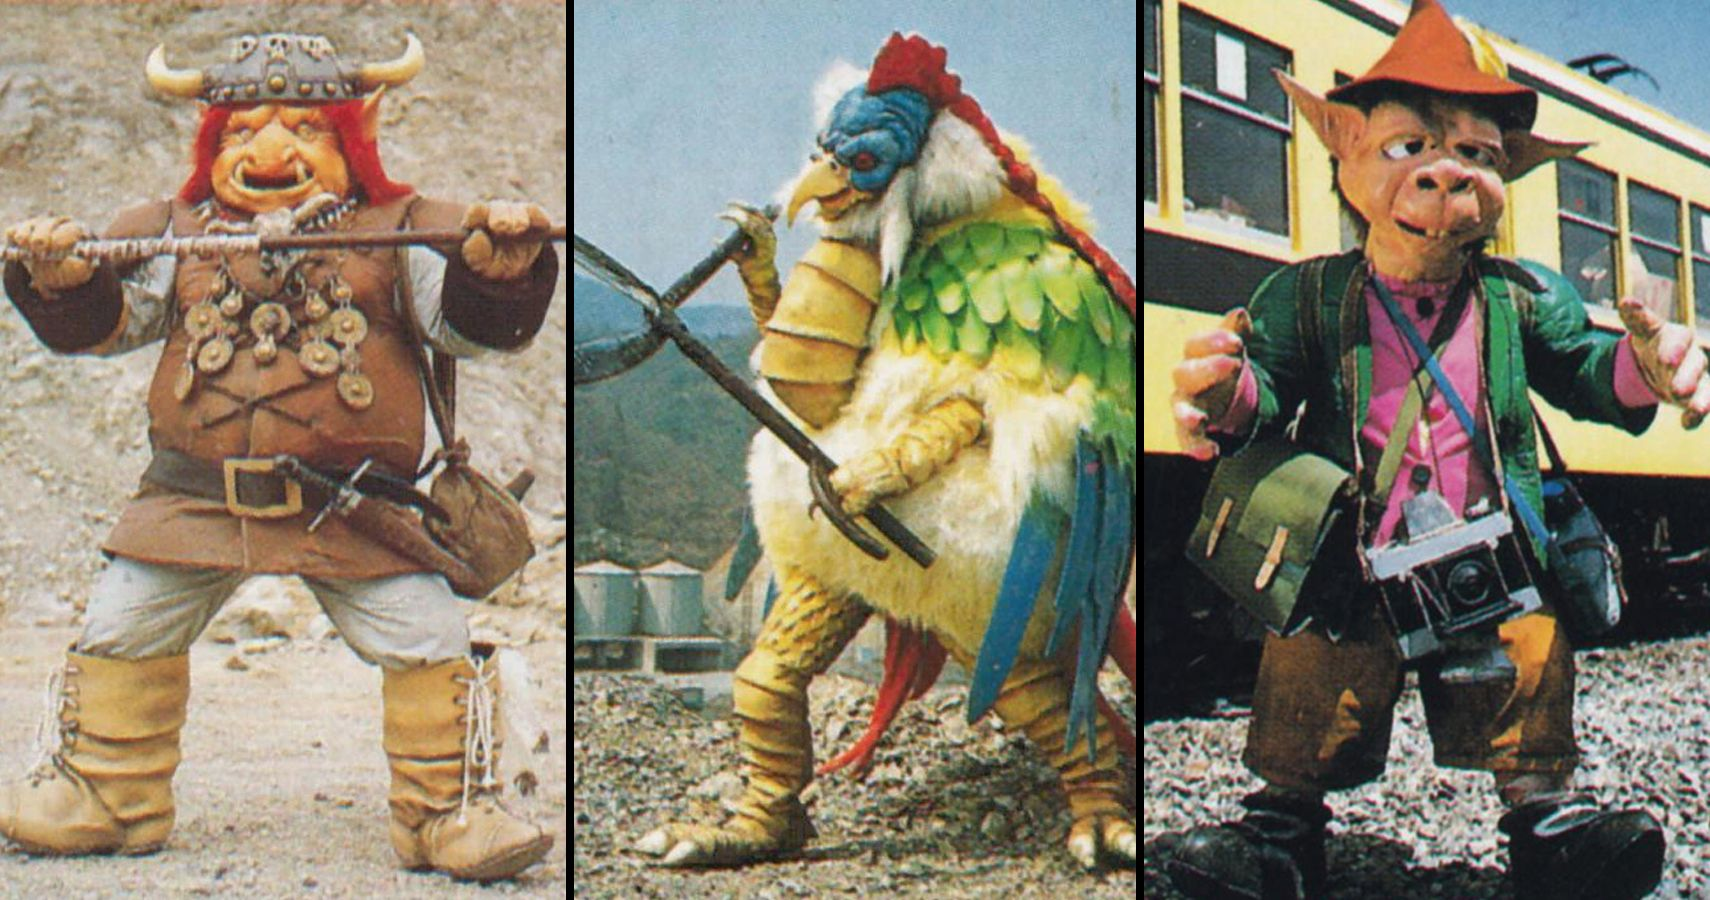 The 15 Worst Power Rangers Villains Ever | TheRichest